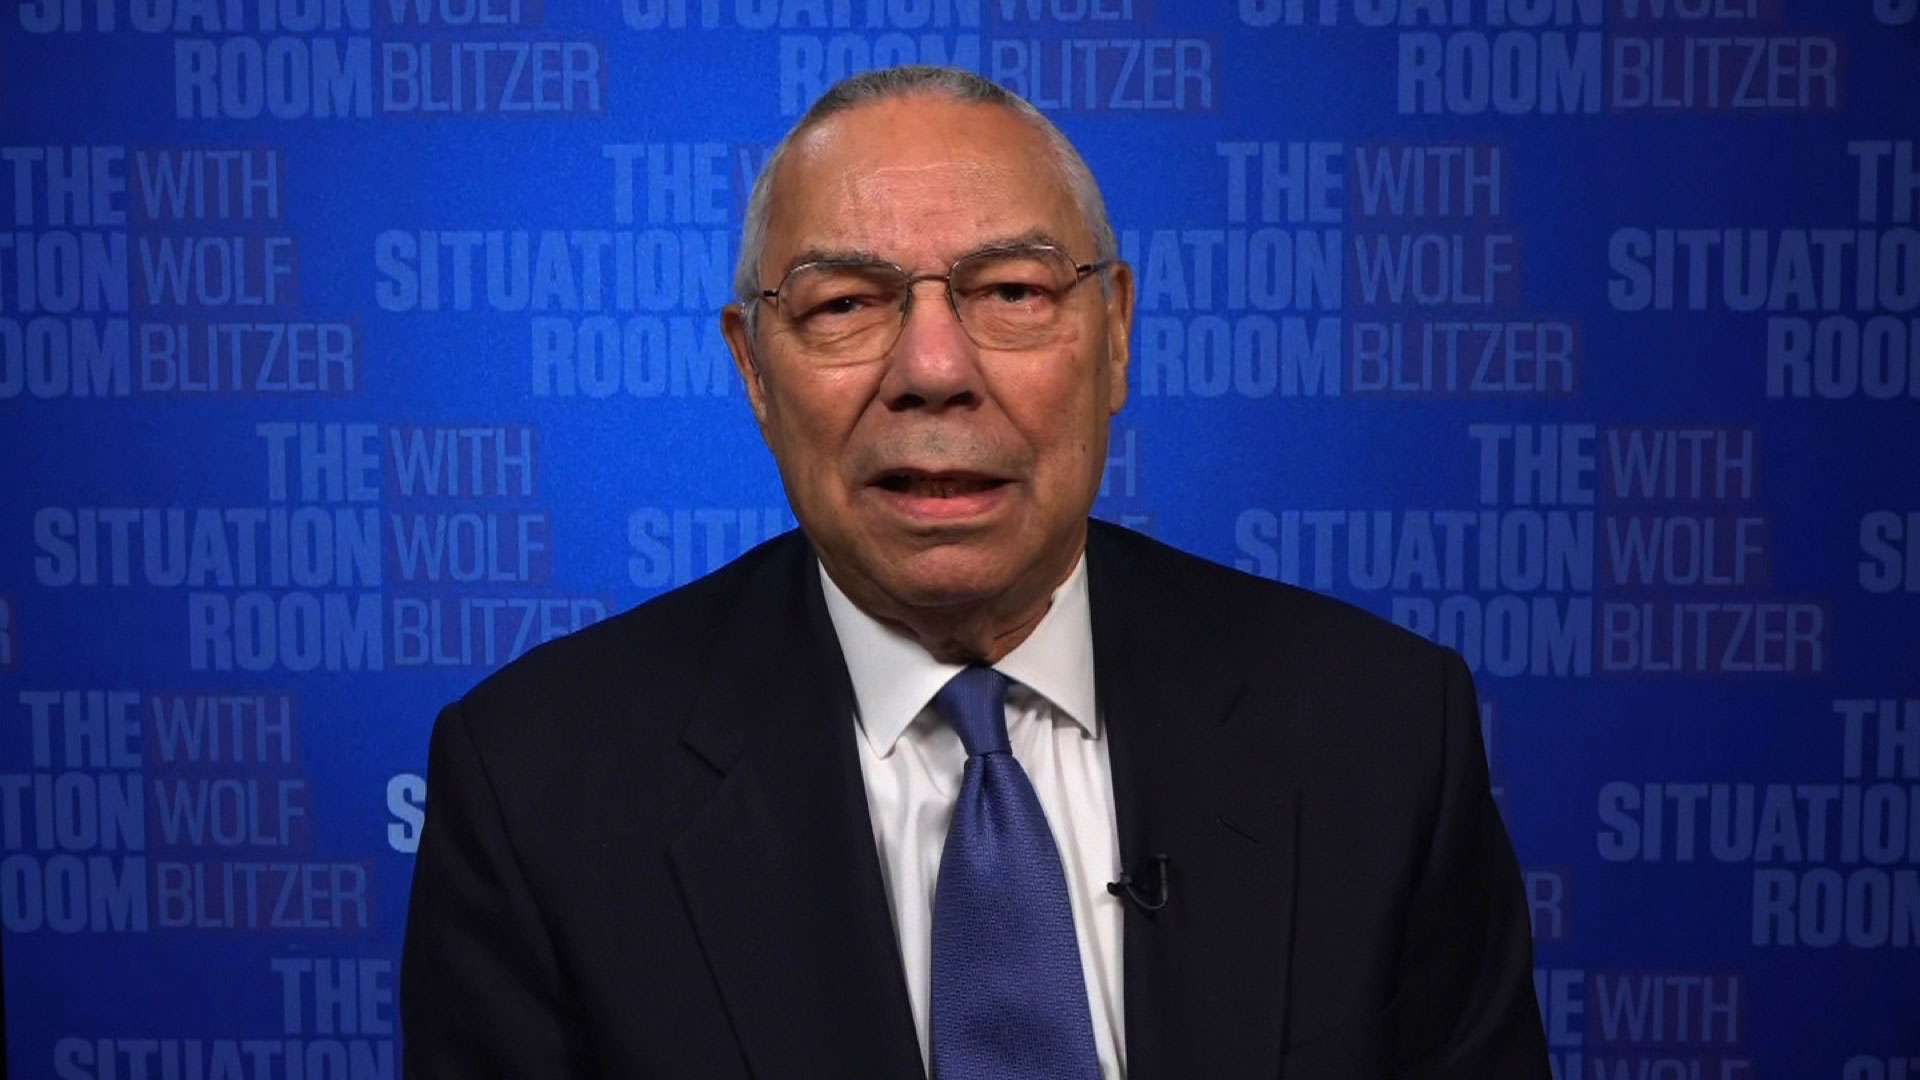 Former Republican Secretary of State Colin Powell speaks with CNN on Thursday, January 7.